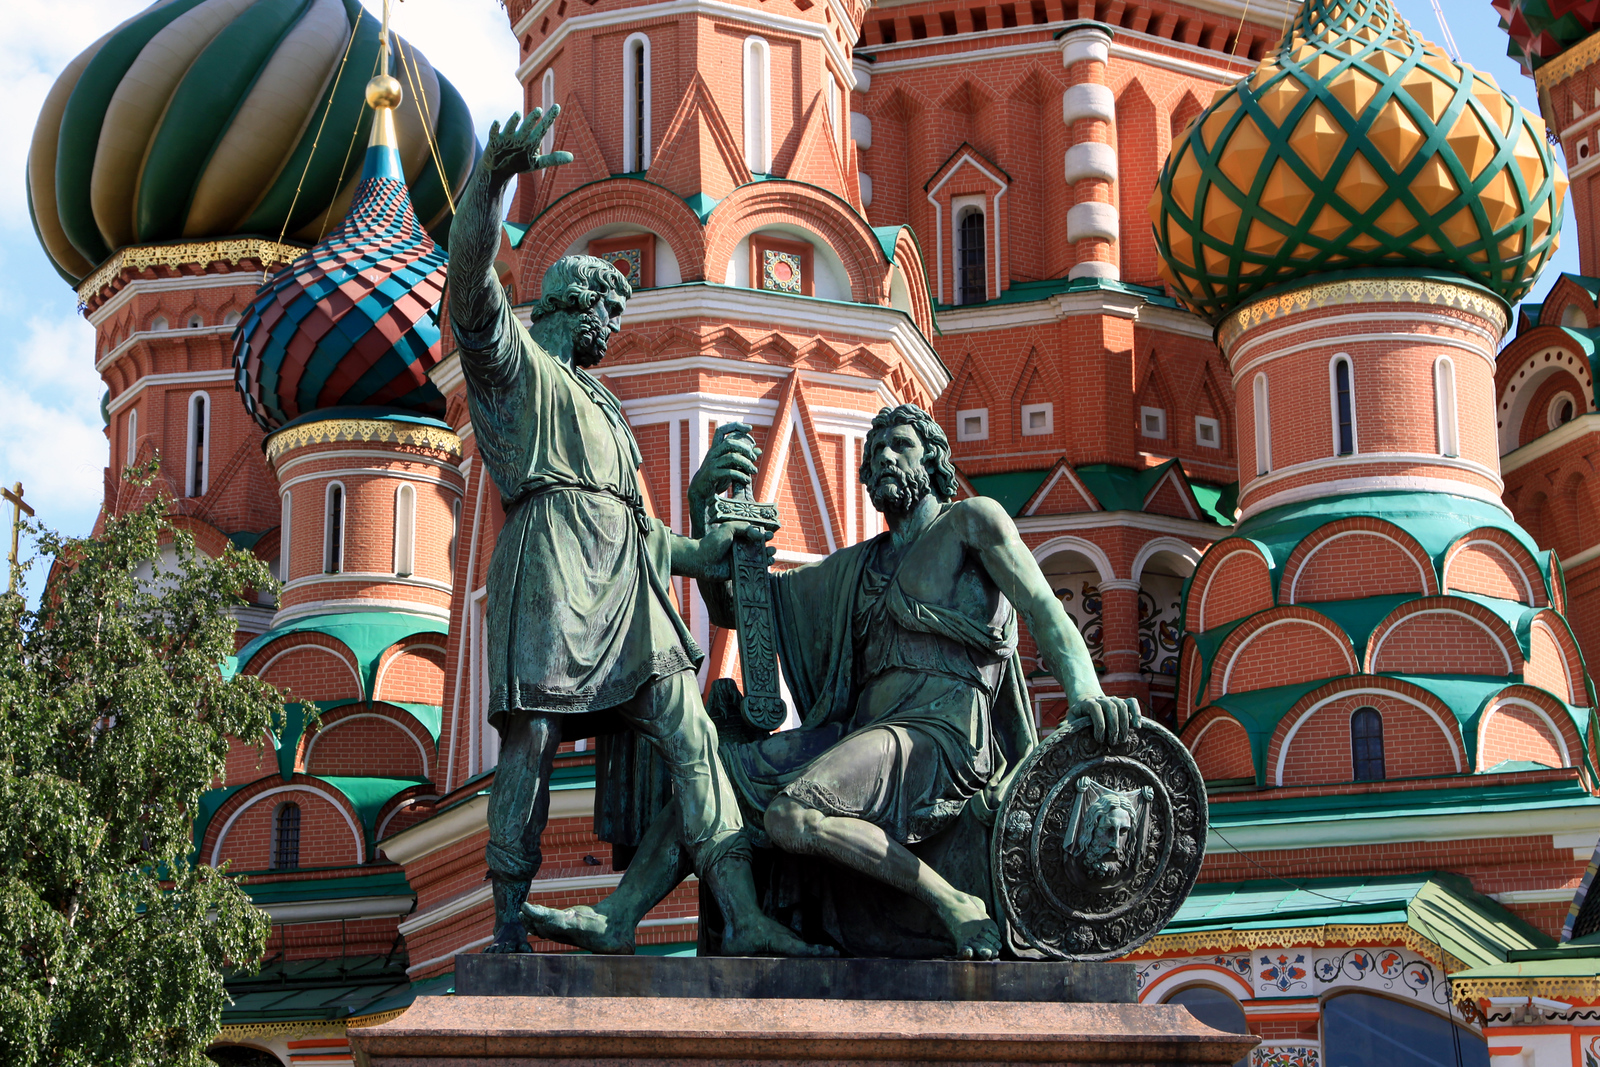 St Basil's Cathedral - The statue of Kuzma Minin and Dmitry Pozharsky, the butcher and the prince who together raised and led the army that ejected occupying Poles from the Kremlin in 1612.